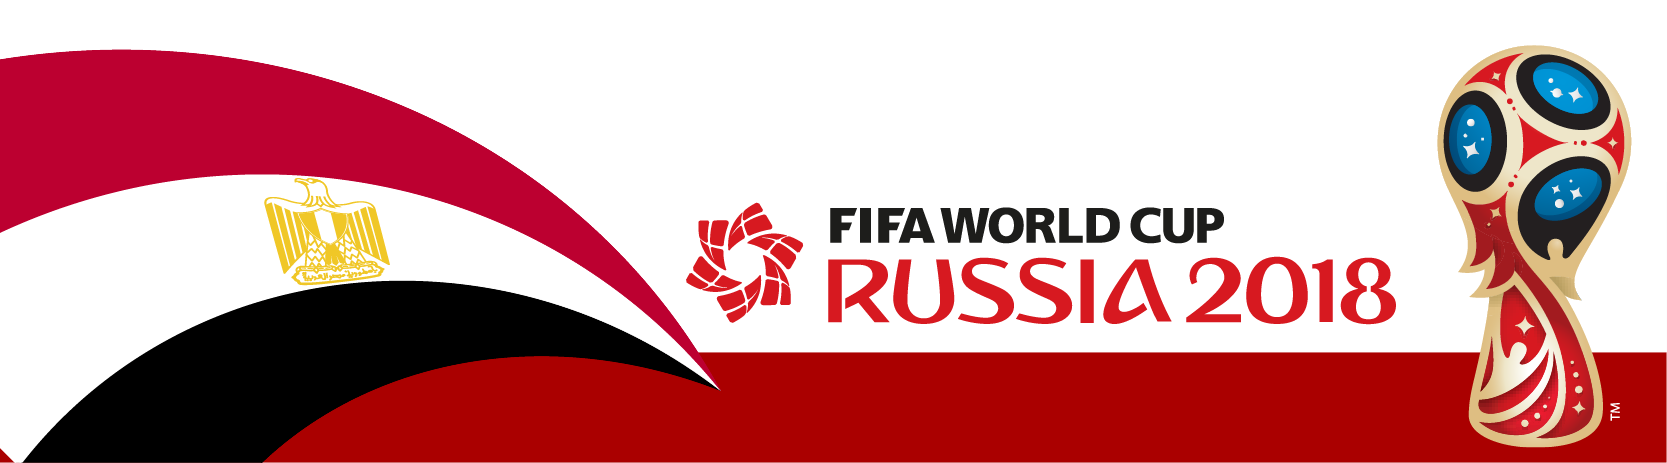 2018 FIFA World Cup Download Transparent PNG Image.